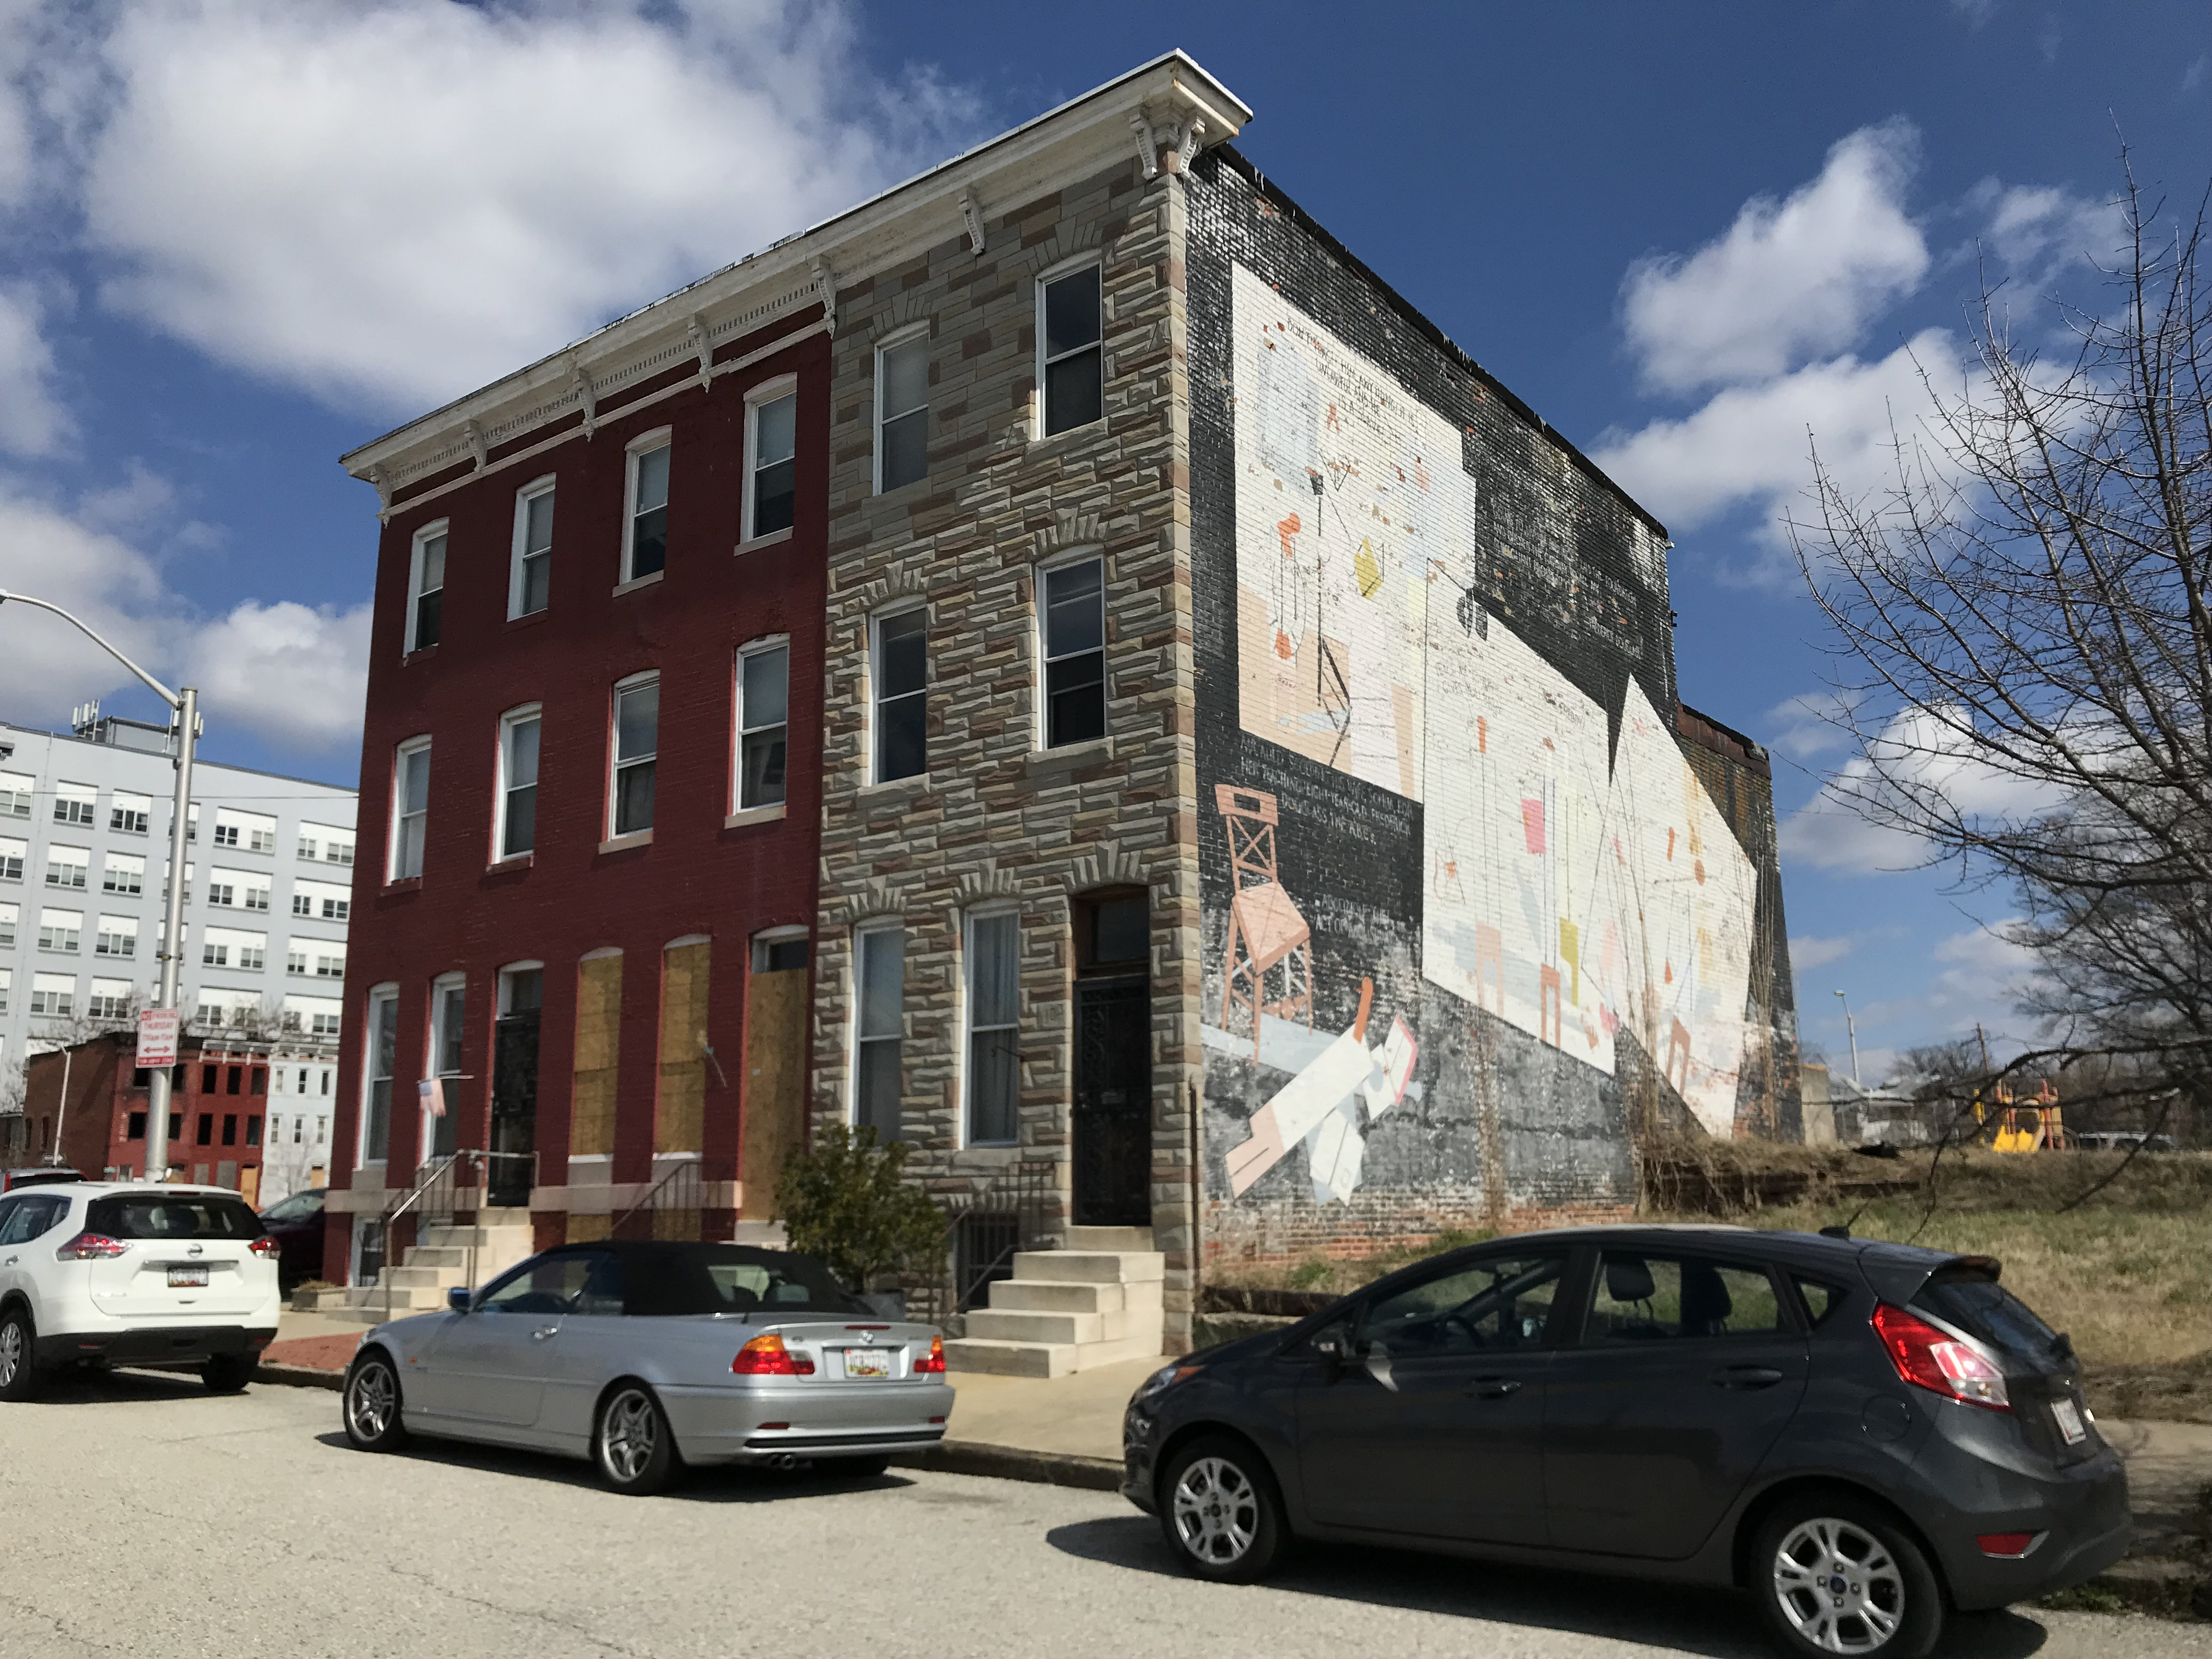 Rowhouse group and mural, 1105-1109 Brentwood Avenue, Baltimore, MD 21202, Public art, Mural, Road, Sign, HQ Photo